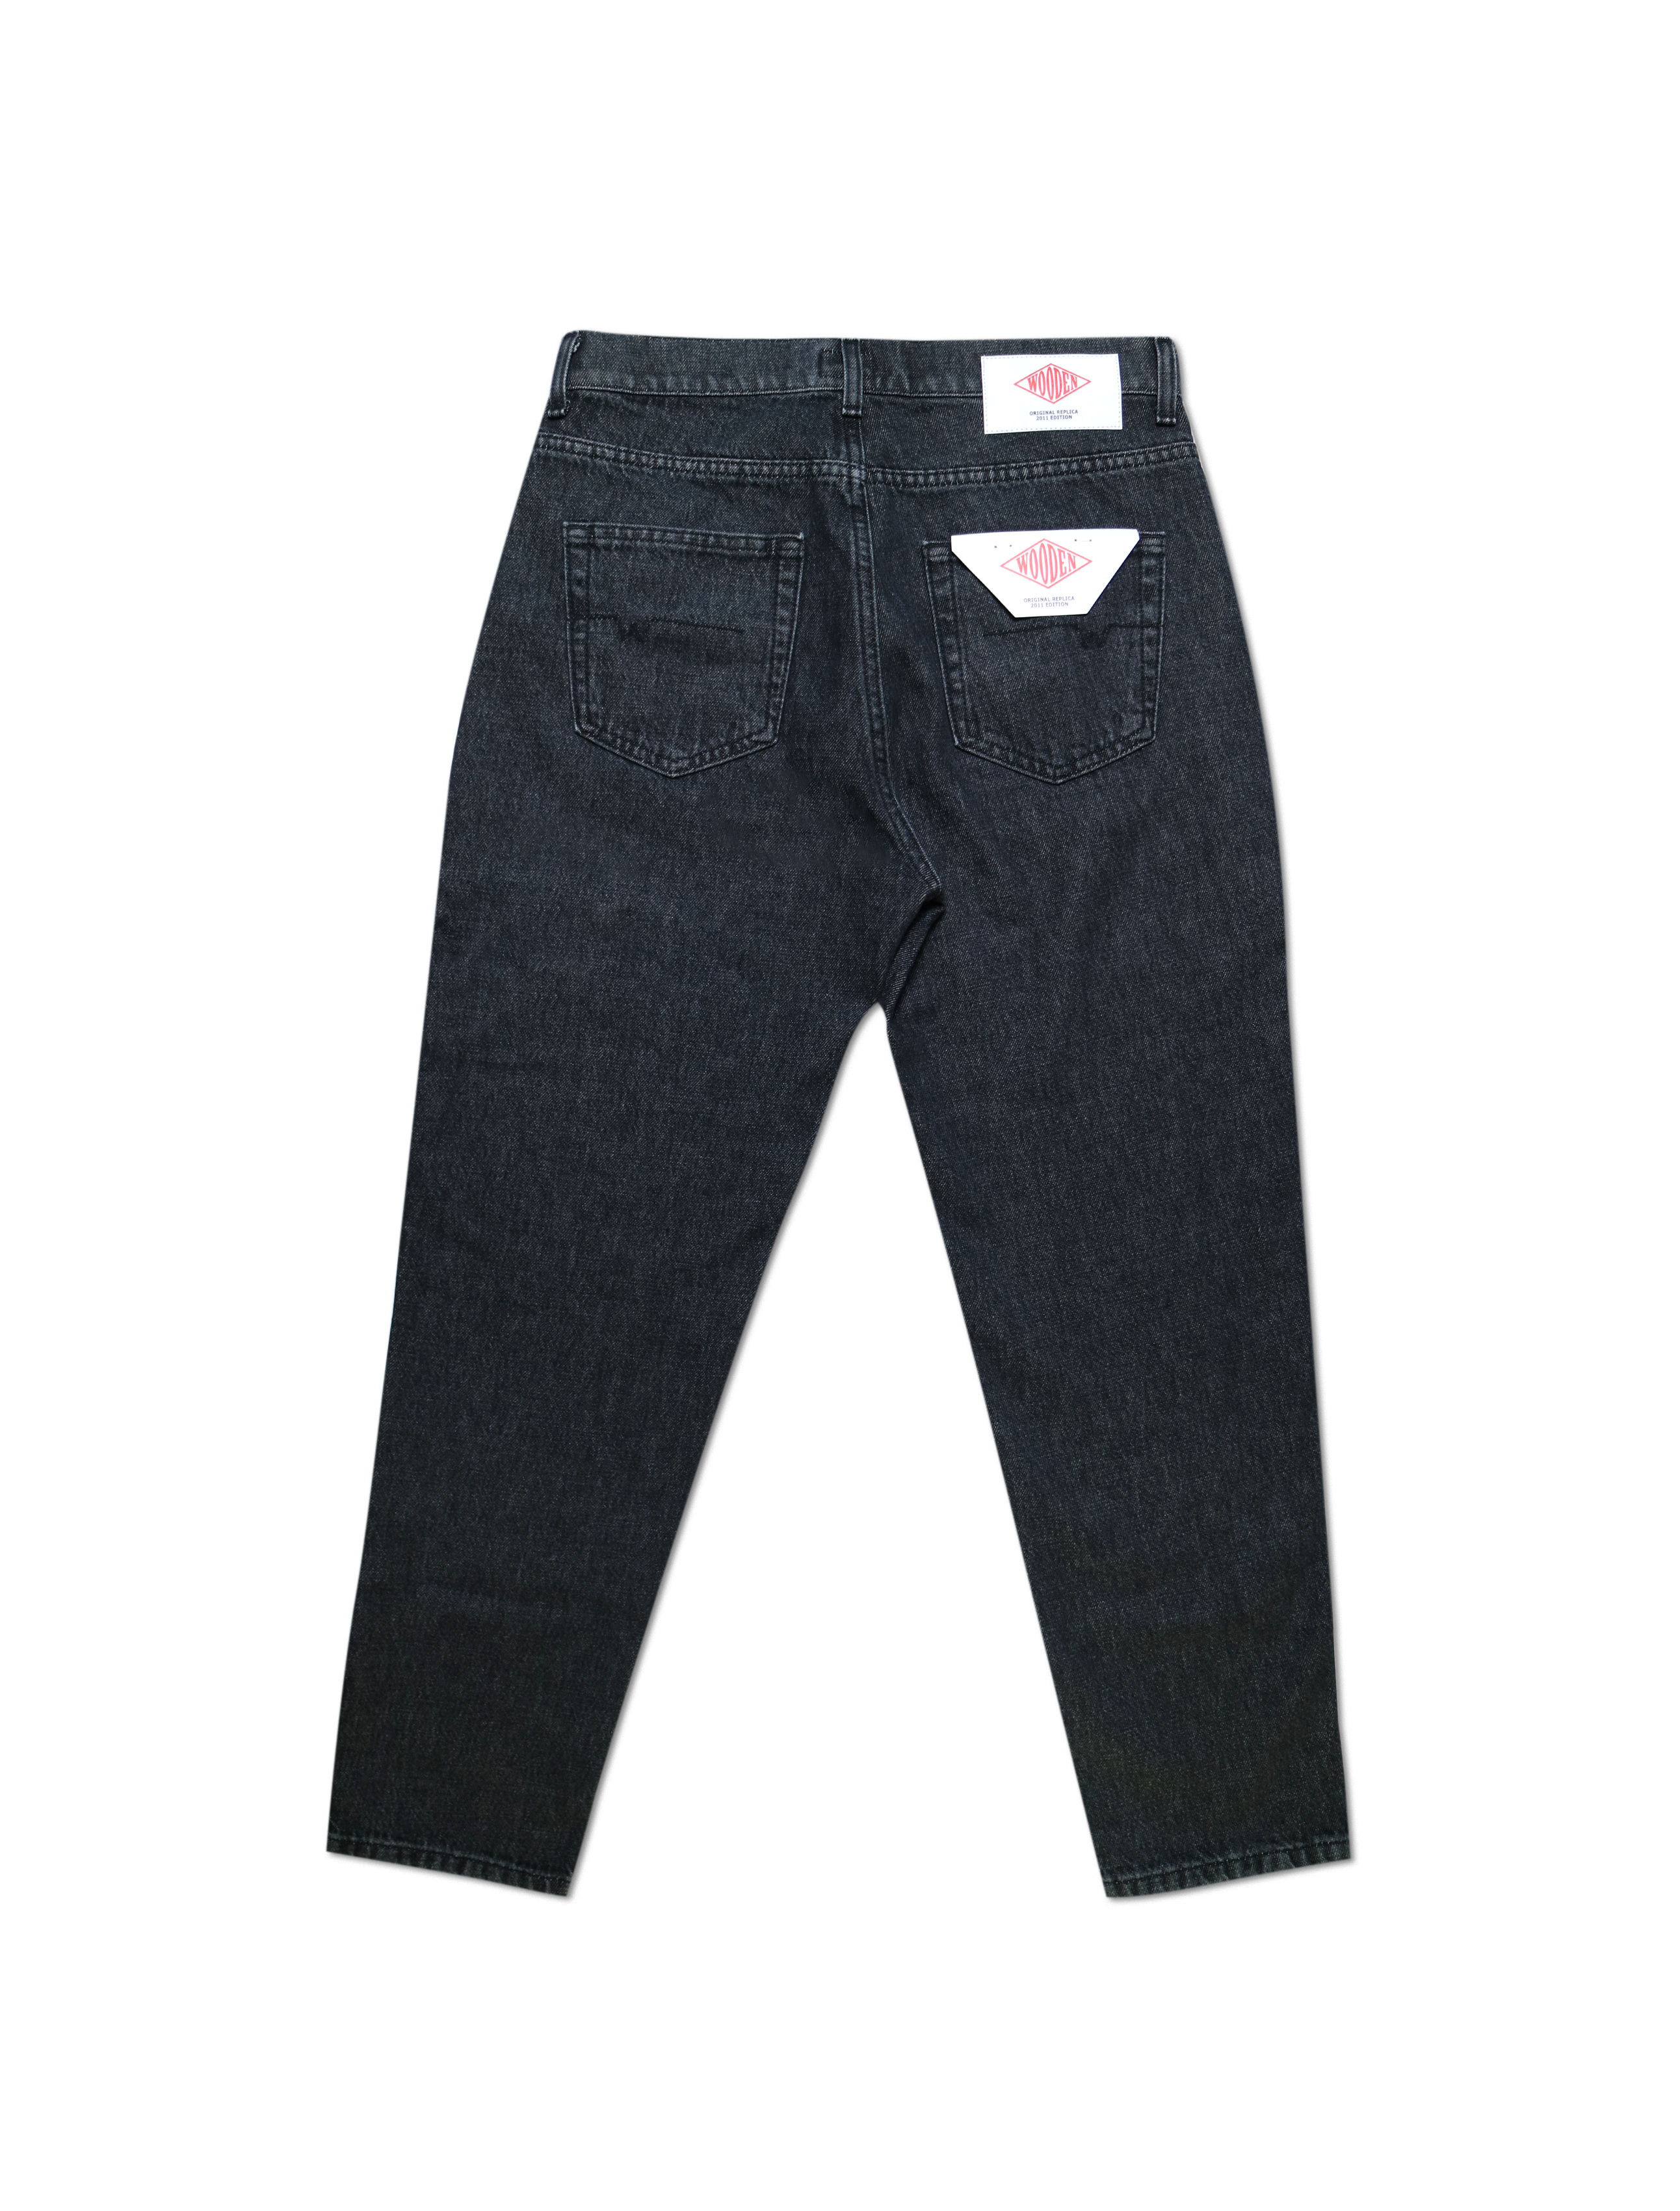 Jeans Replica Real Stone   Wooden Store